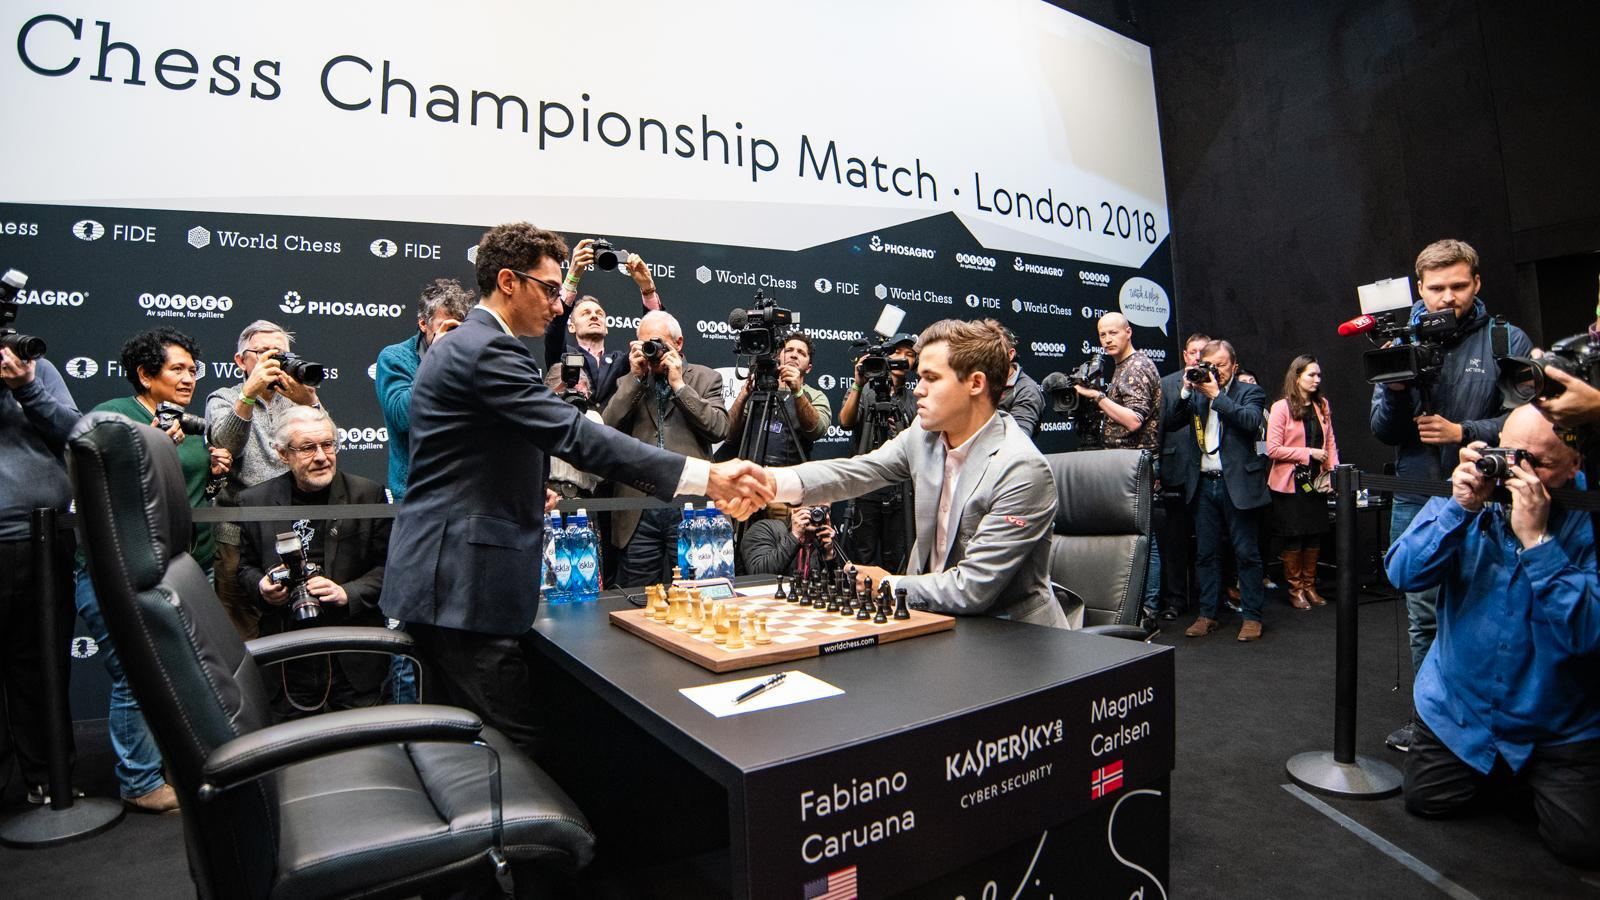 2020 World Chess Championship: 14 Games, Double The Prize Fund